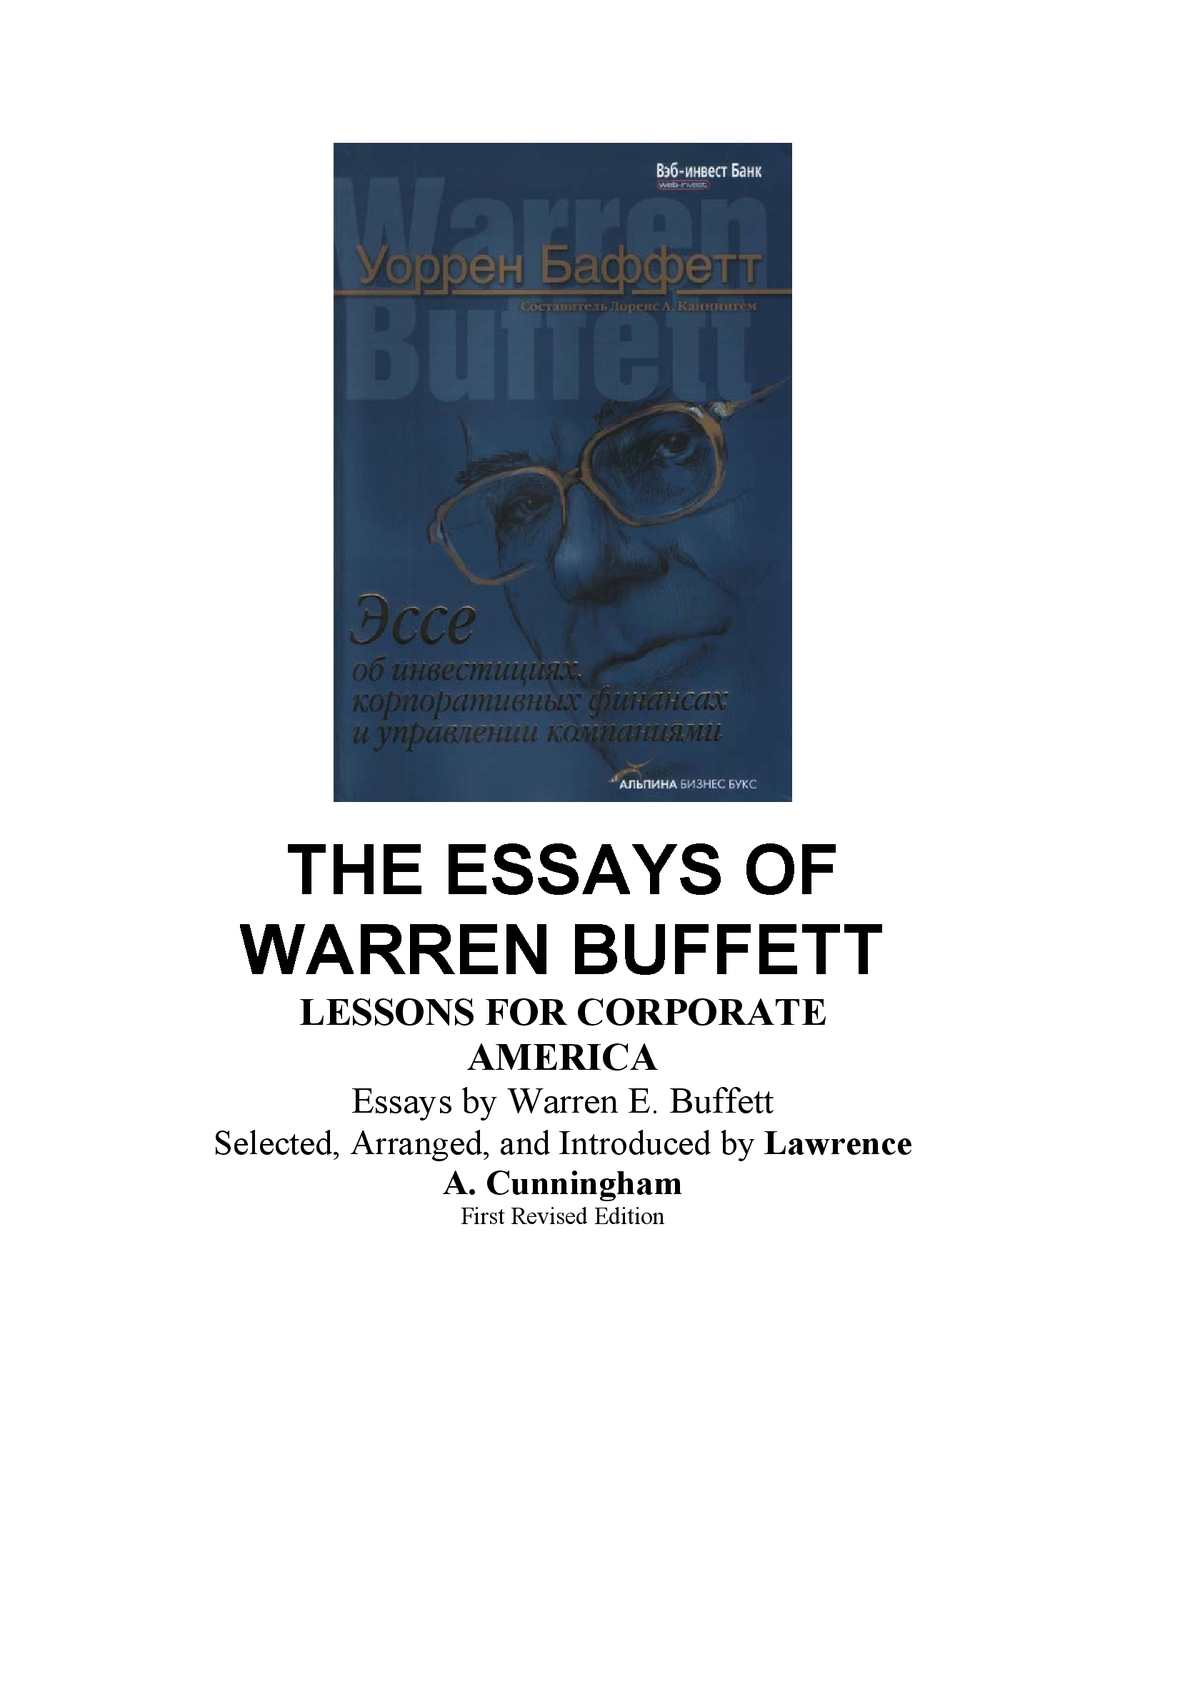 the essays of warren buffett lessons for investors and managers Register free to download files | file name : essays of warren buffett lessons for investors and managers pdf essays of warren buffett lessons for investors.